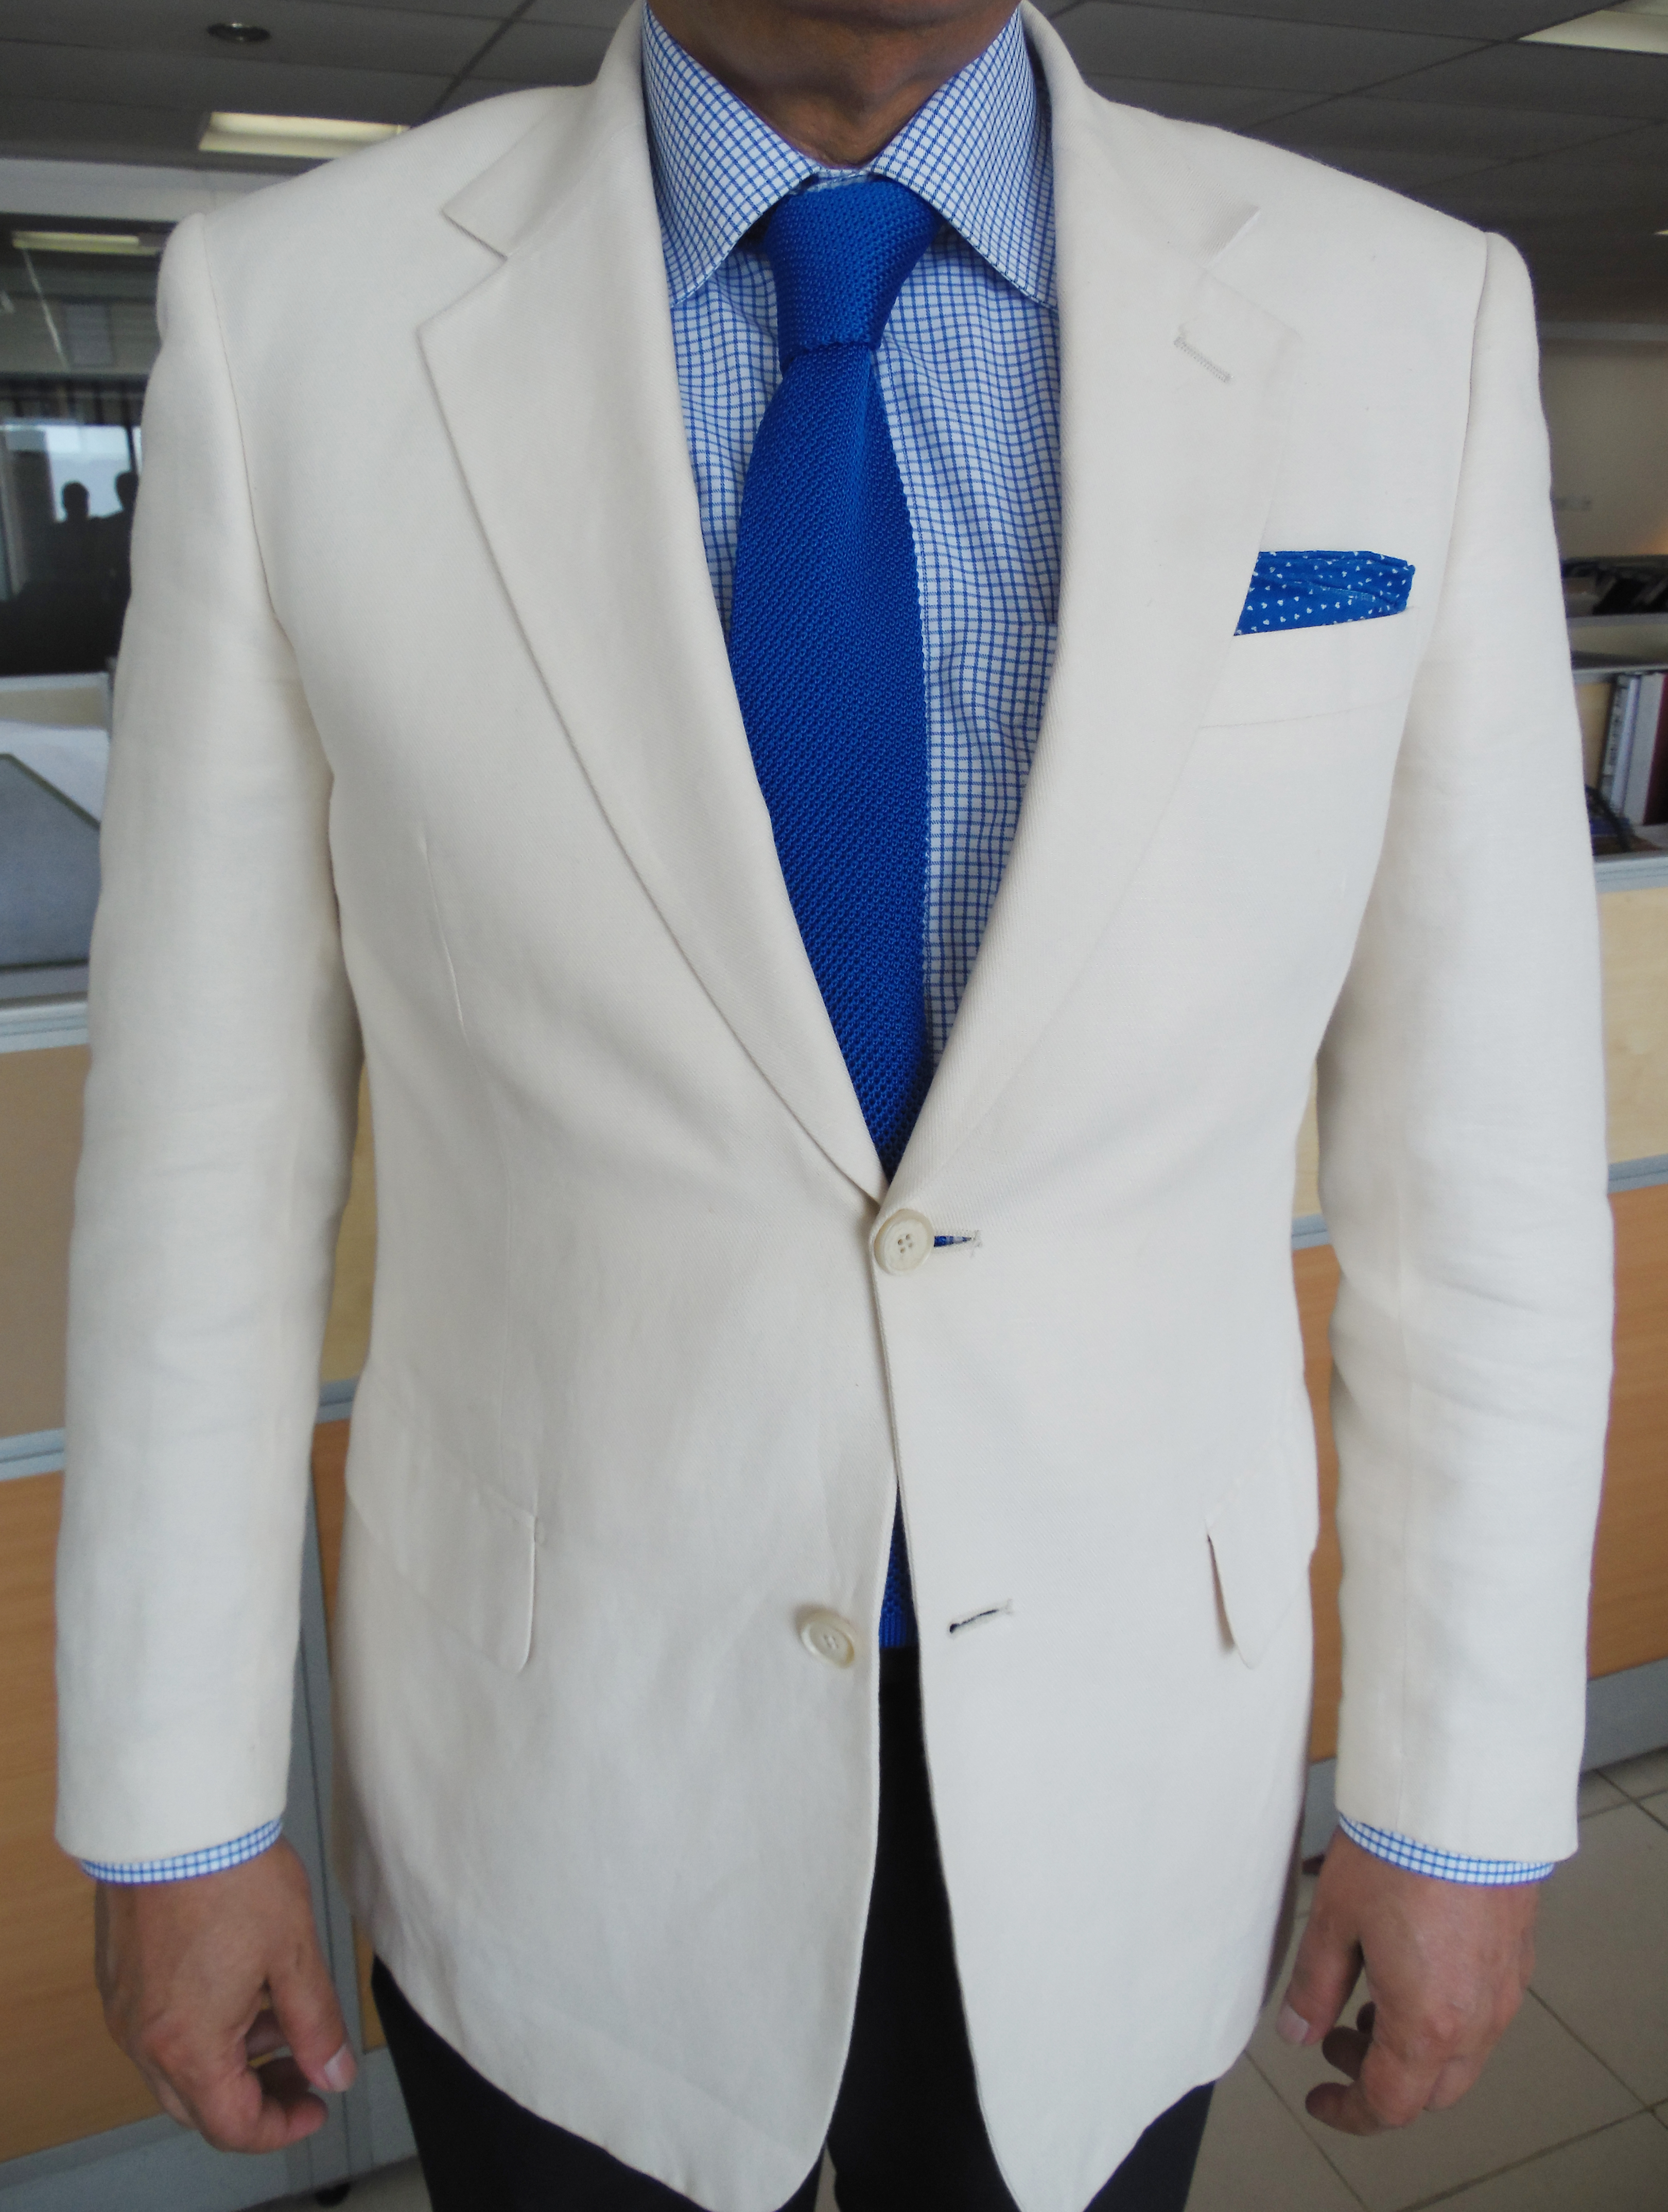 May 2014 – This is a blog about men's style